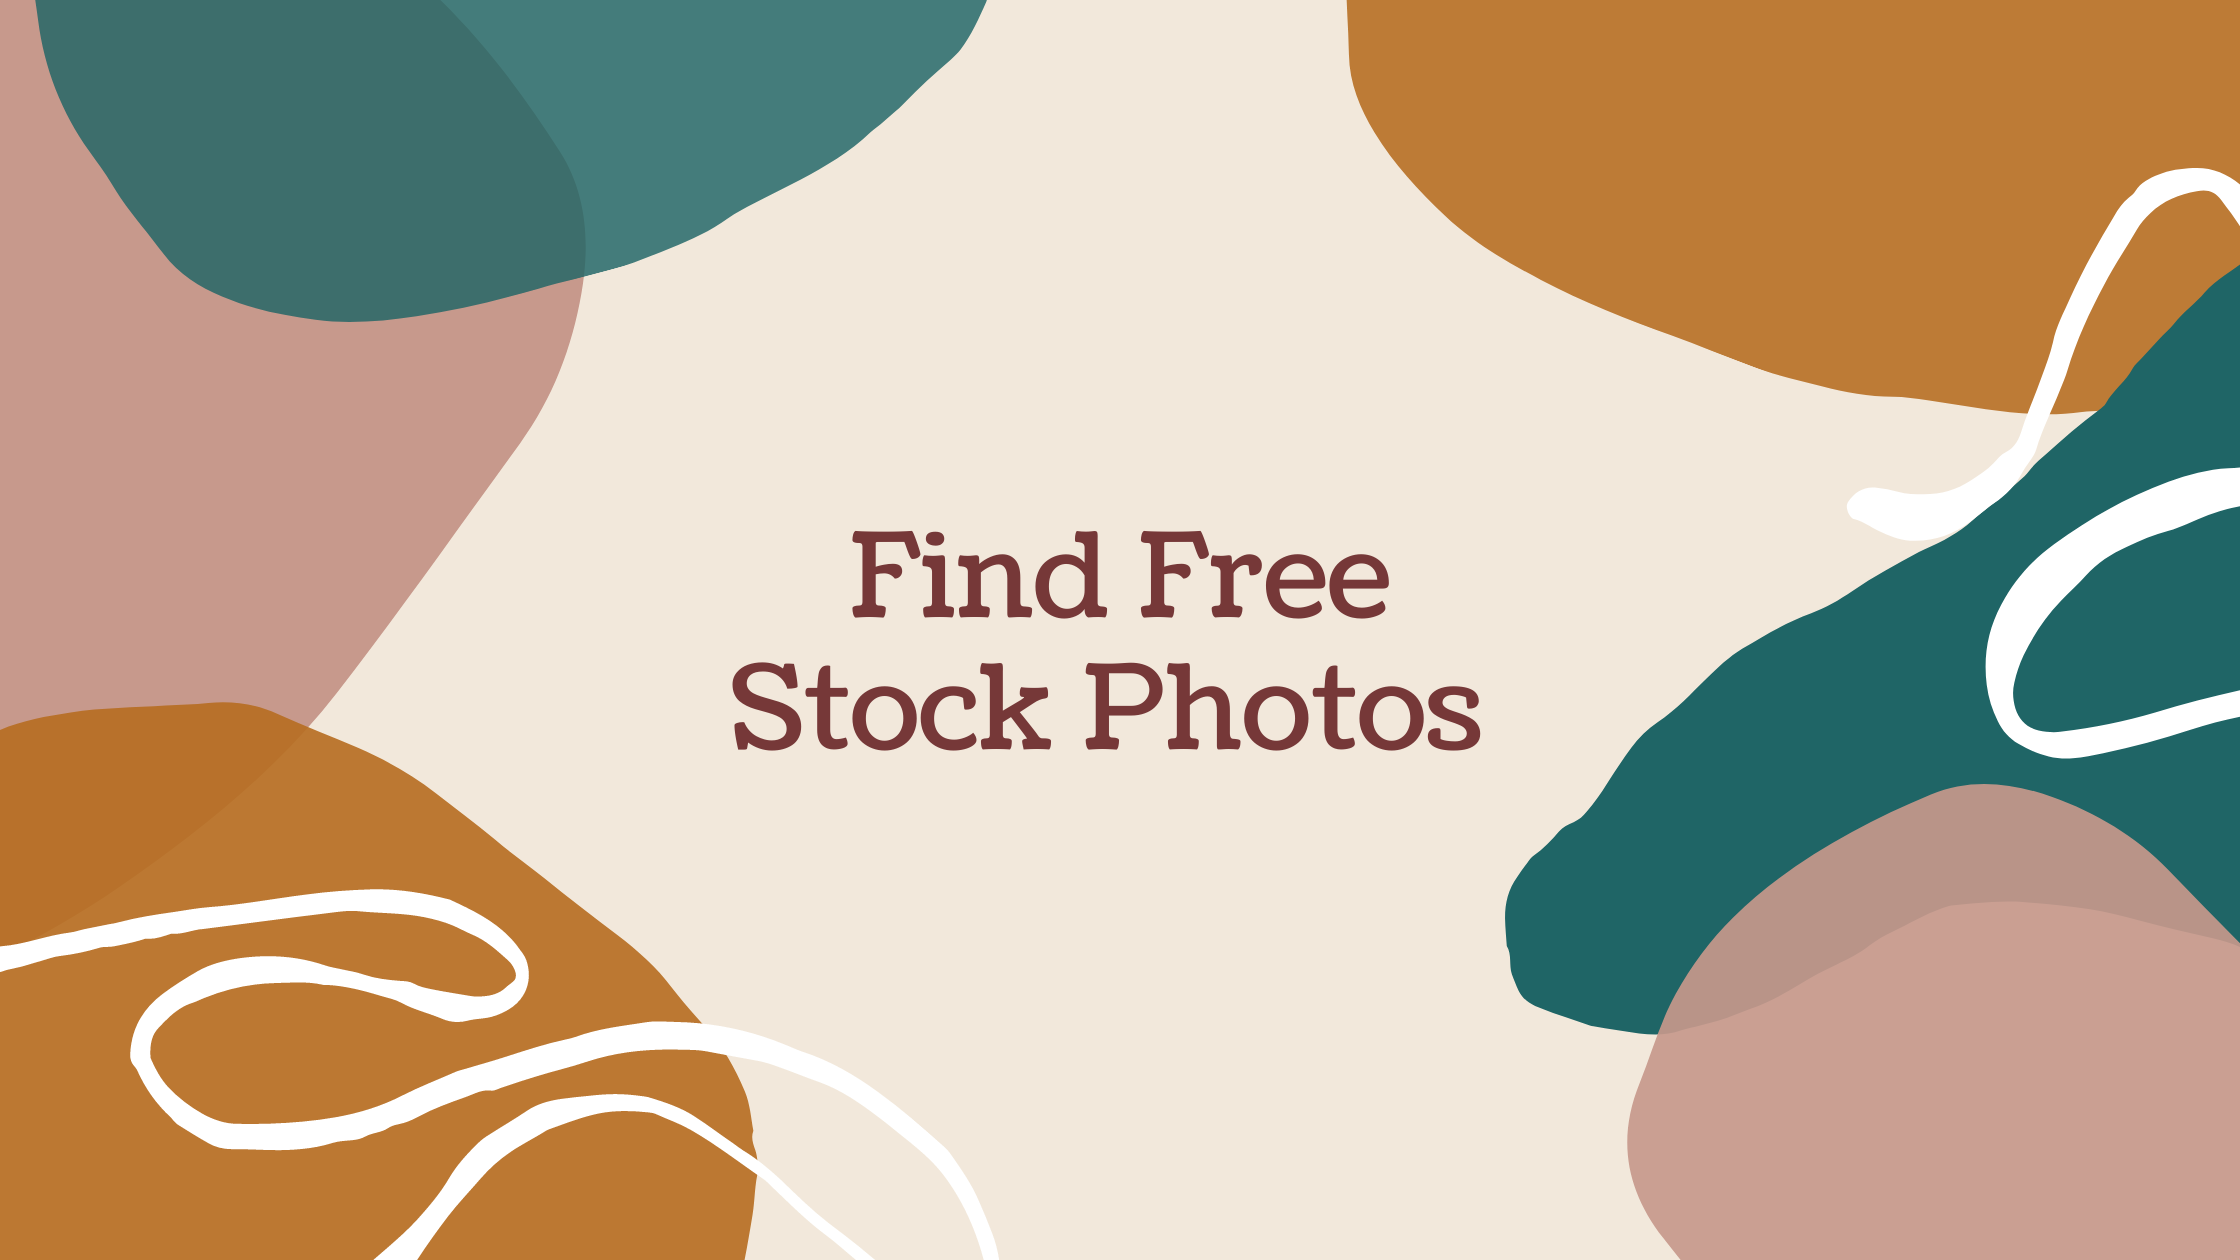 How to Find Free Stock Photos?